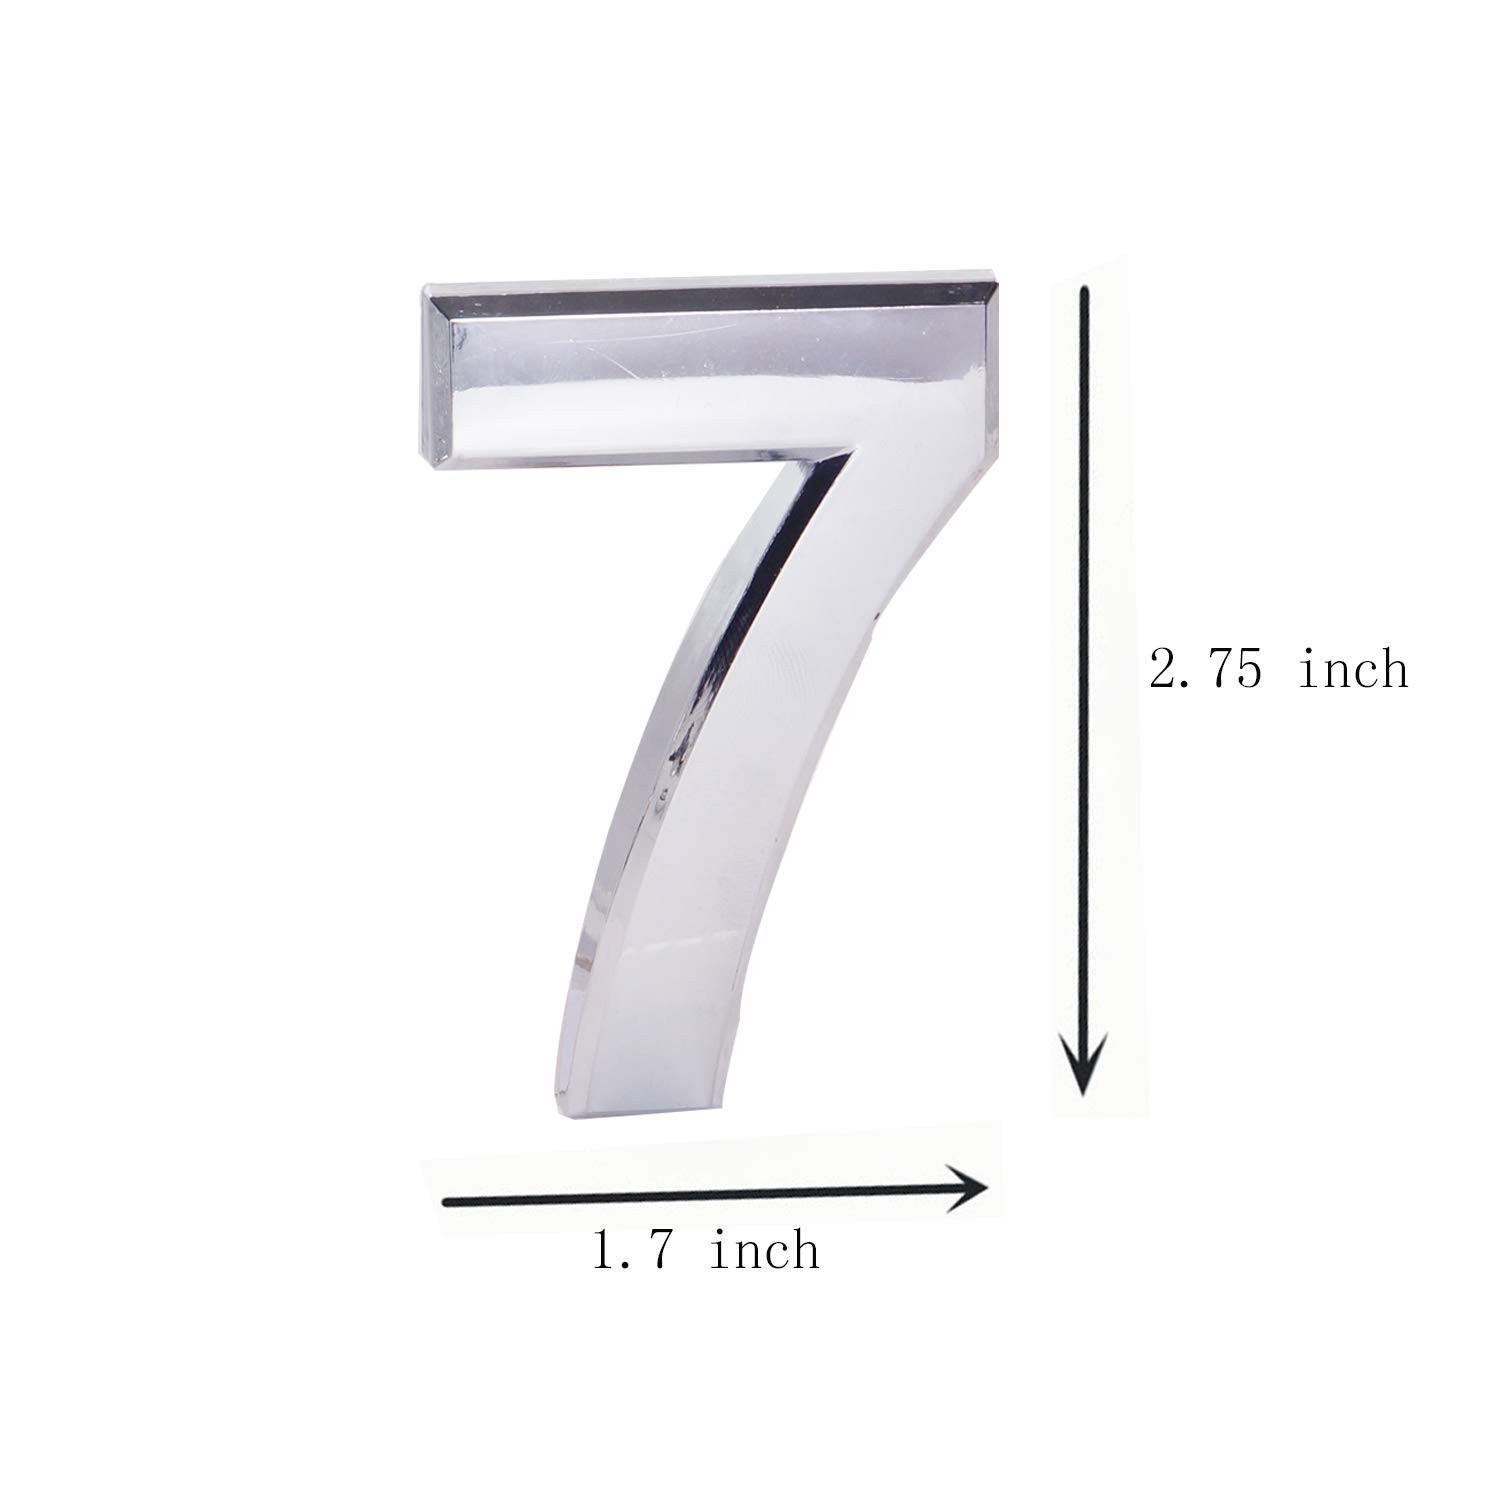 Double 9 2.75 Inch Self Adhesive House Numbers Door Address Number for Mailbox//Home//Hotel//Office//Condo//Apartment Silver